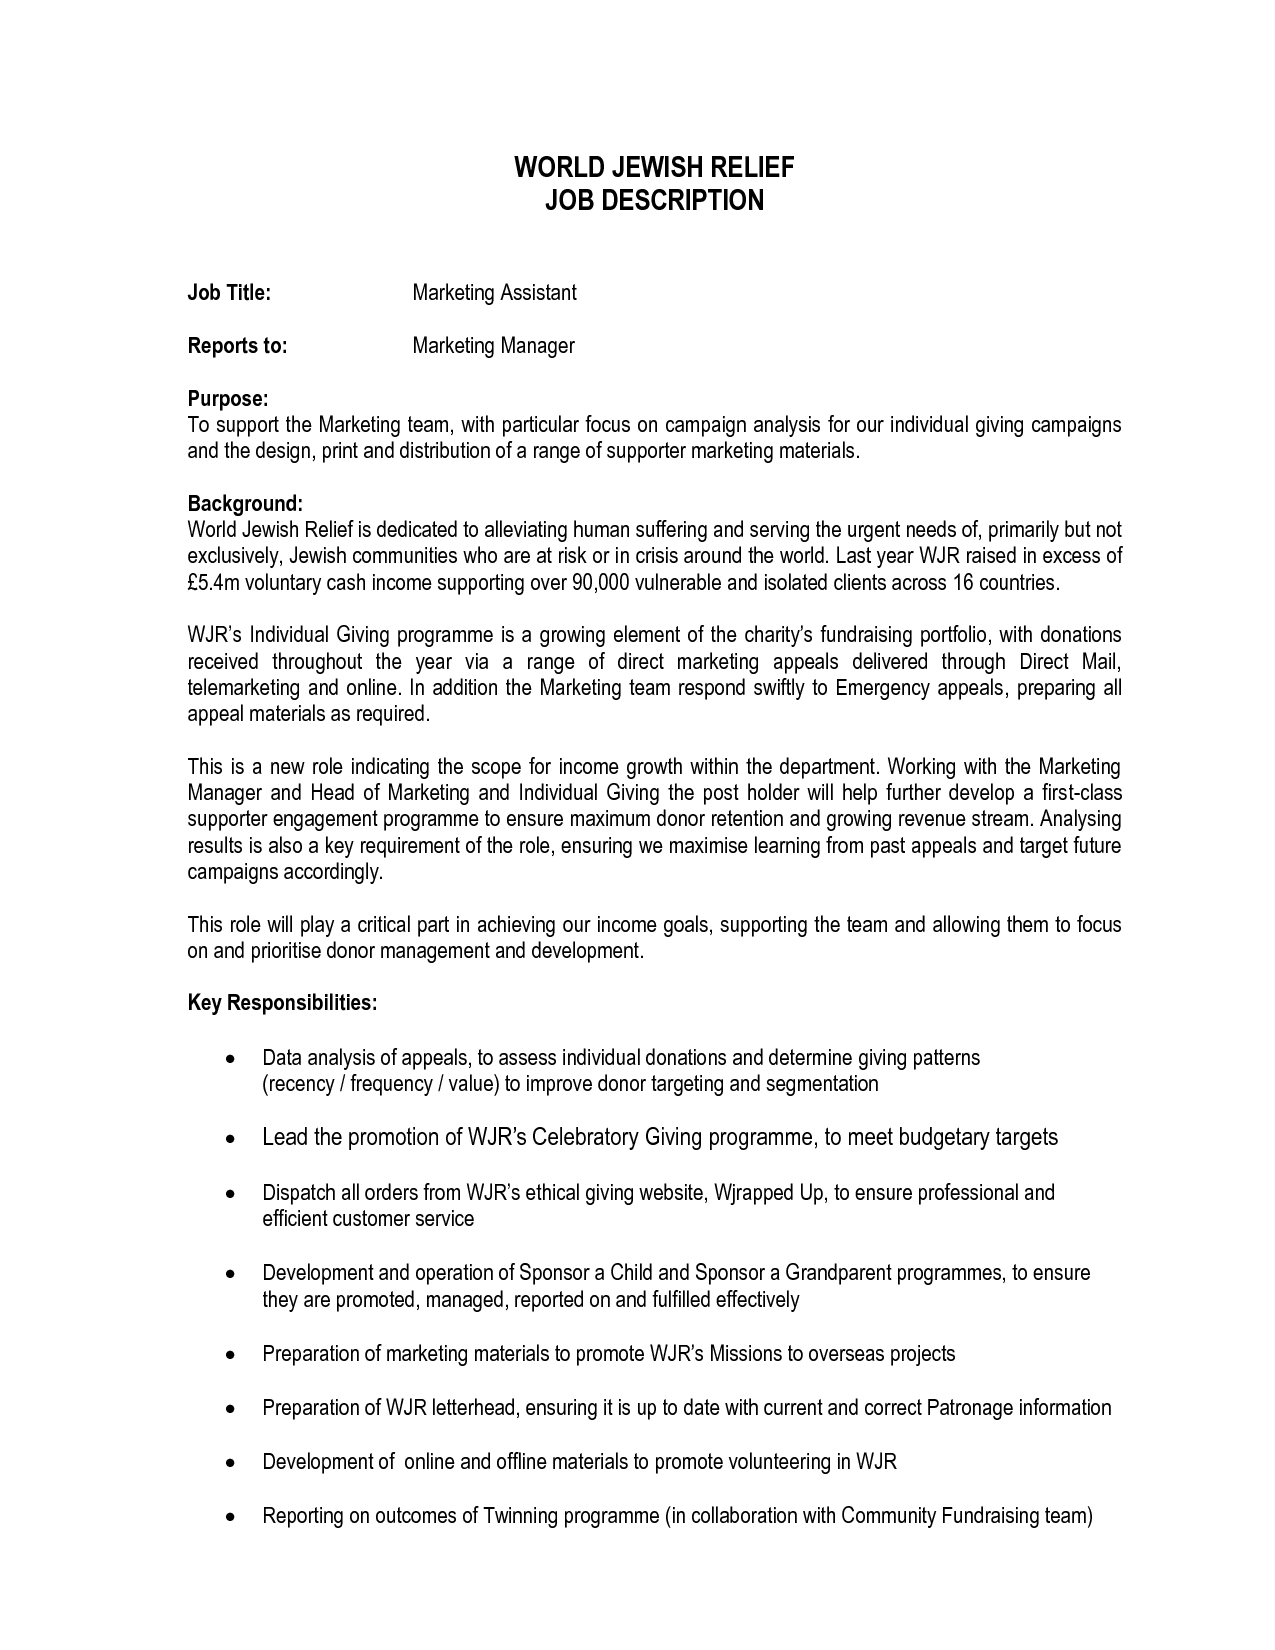 Marketing Assistant Job Description world jewish relief job ...